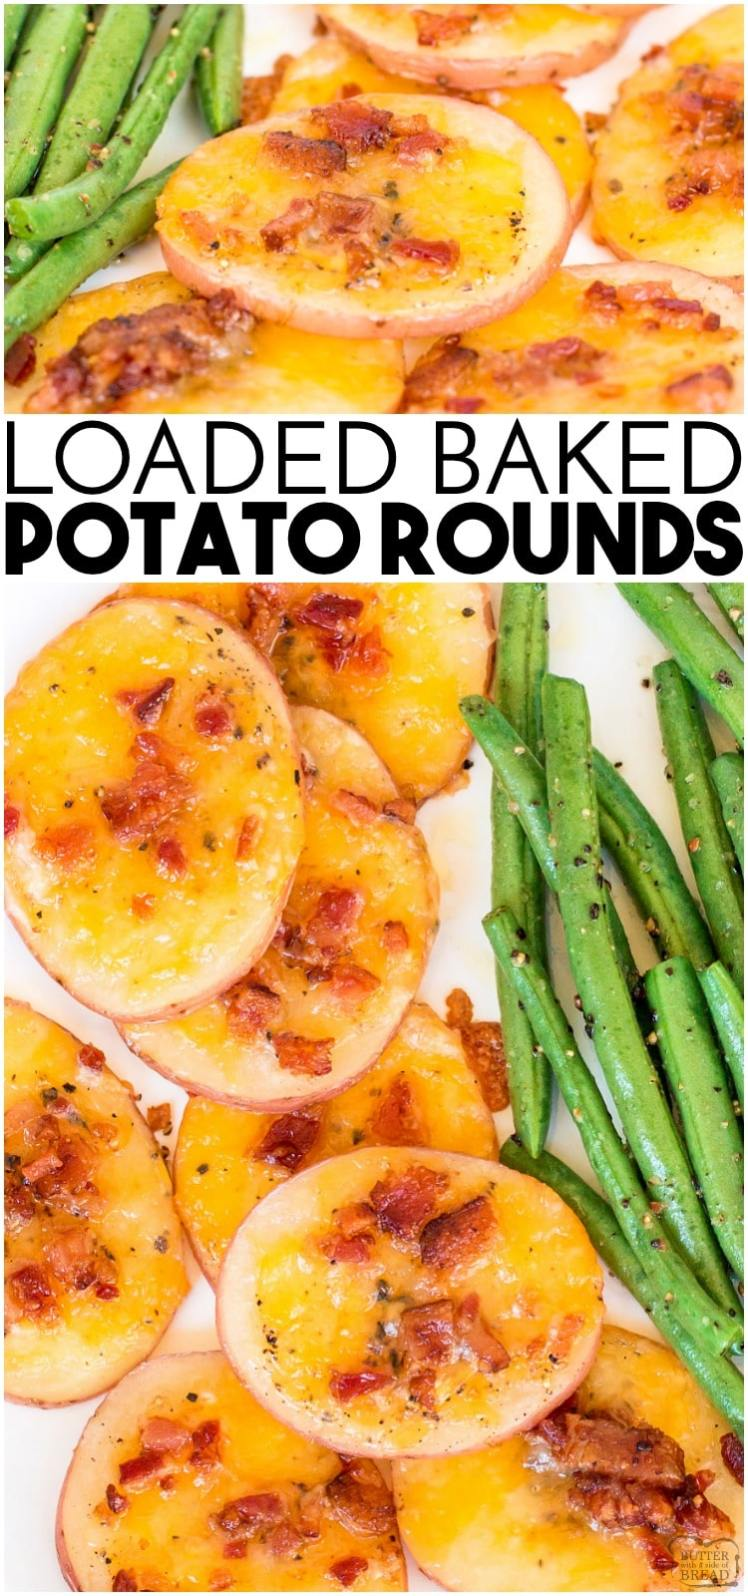 Loaded Baked Potato Rounds are quick and easy to make. Baked potatoes sliced thin and topped with bacon, cheese and sour cream! Perfect appetizer or side dish.  #potatoes #bakedpotatoes #roastedpotatoes #appetizer #baking #cheese #recipe from Butter With a Side of Bread